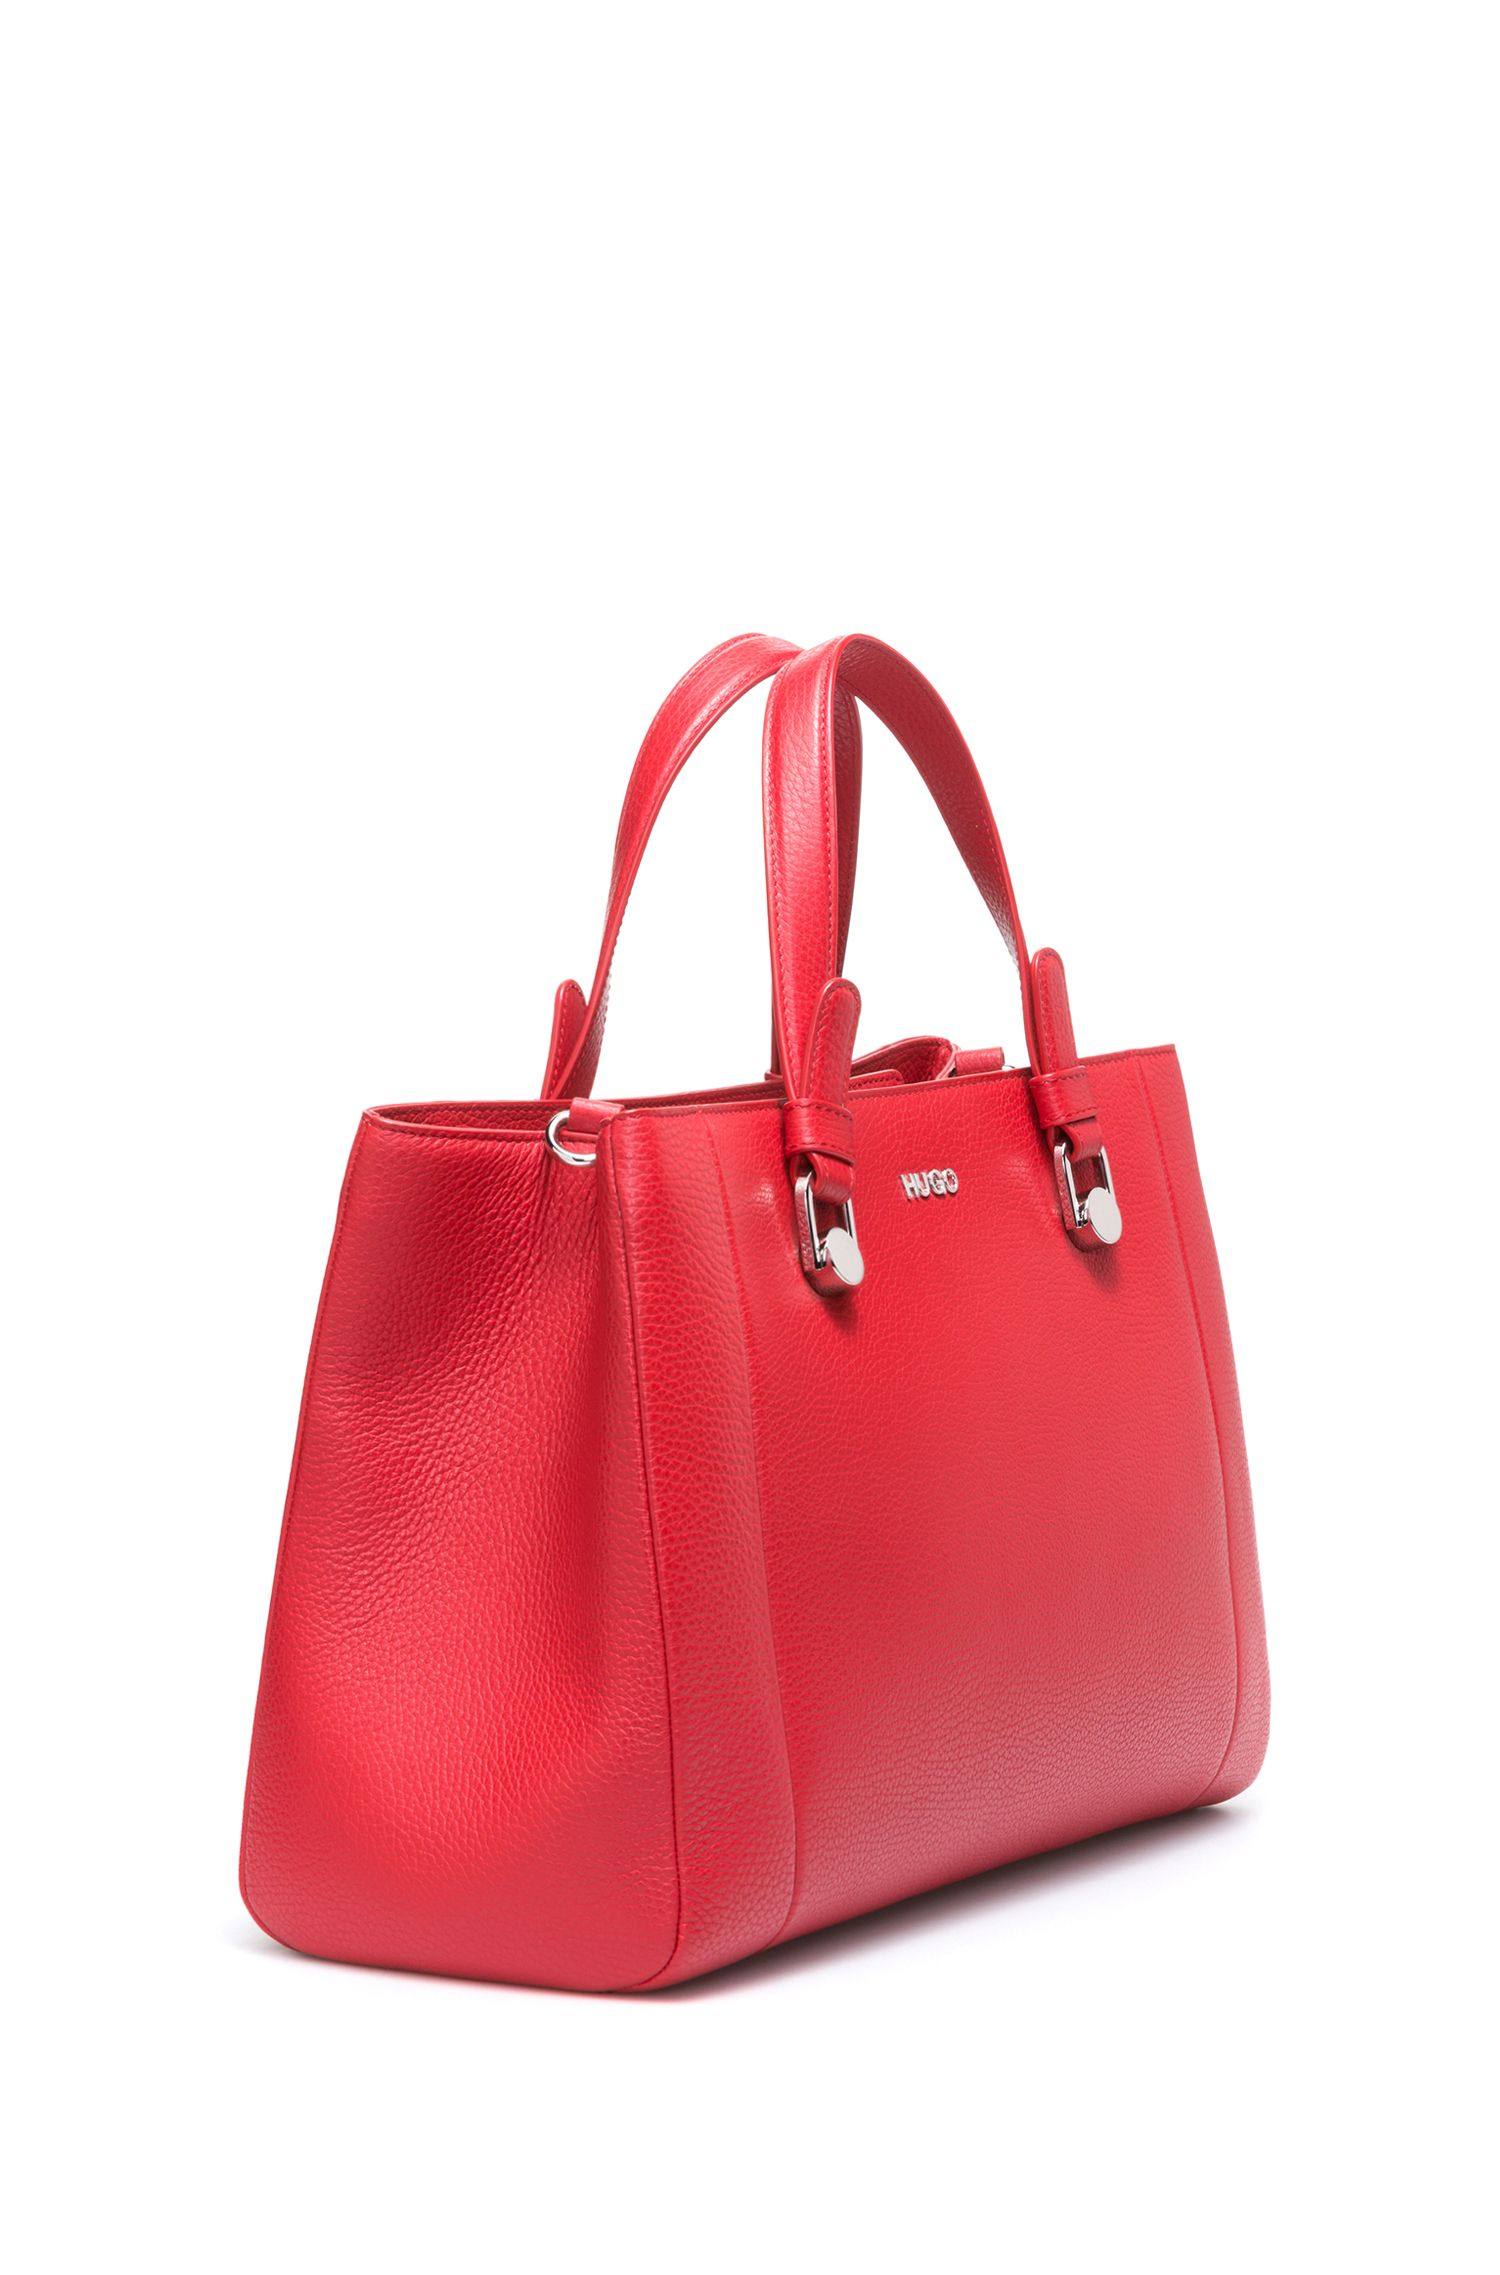 Tote handbag in grained Italian leather